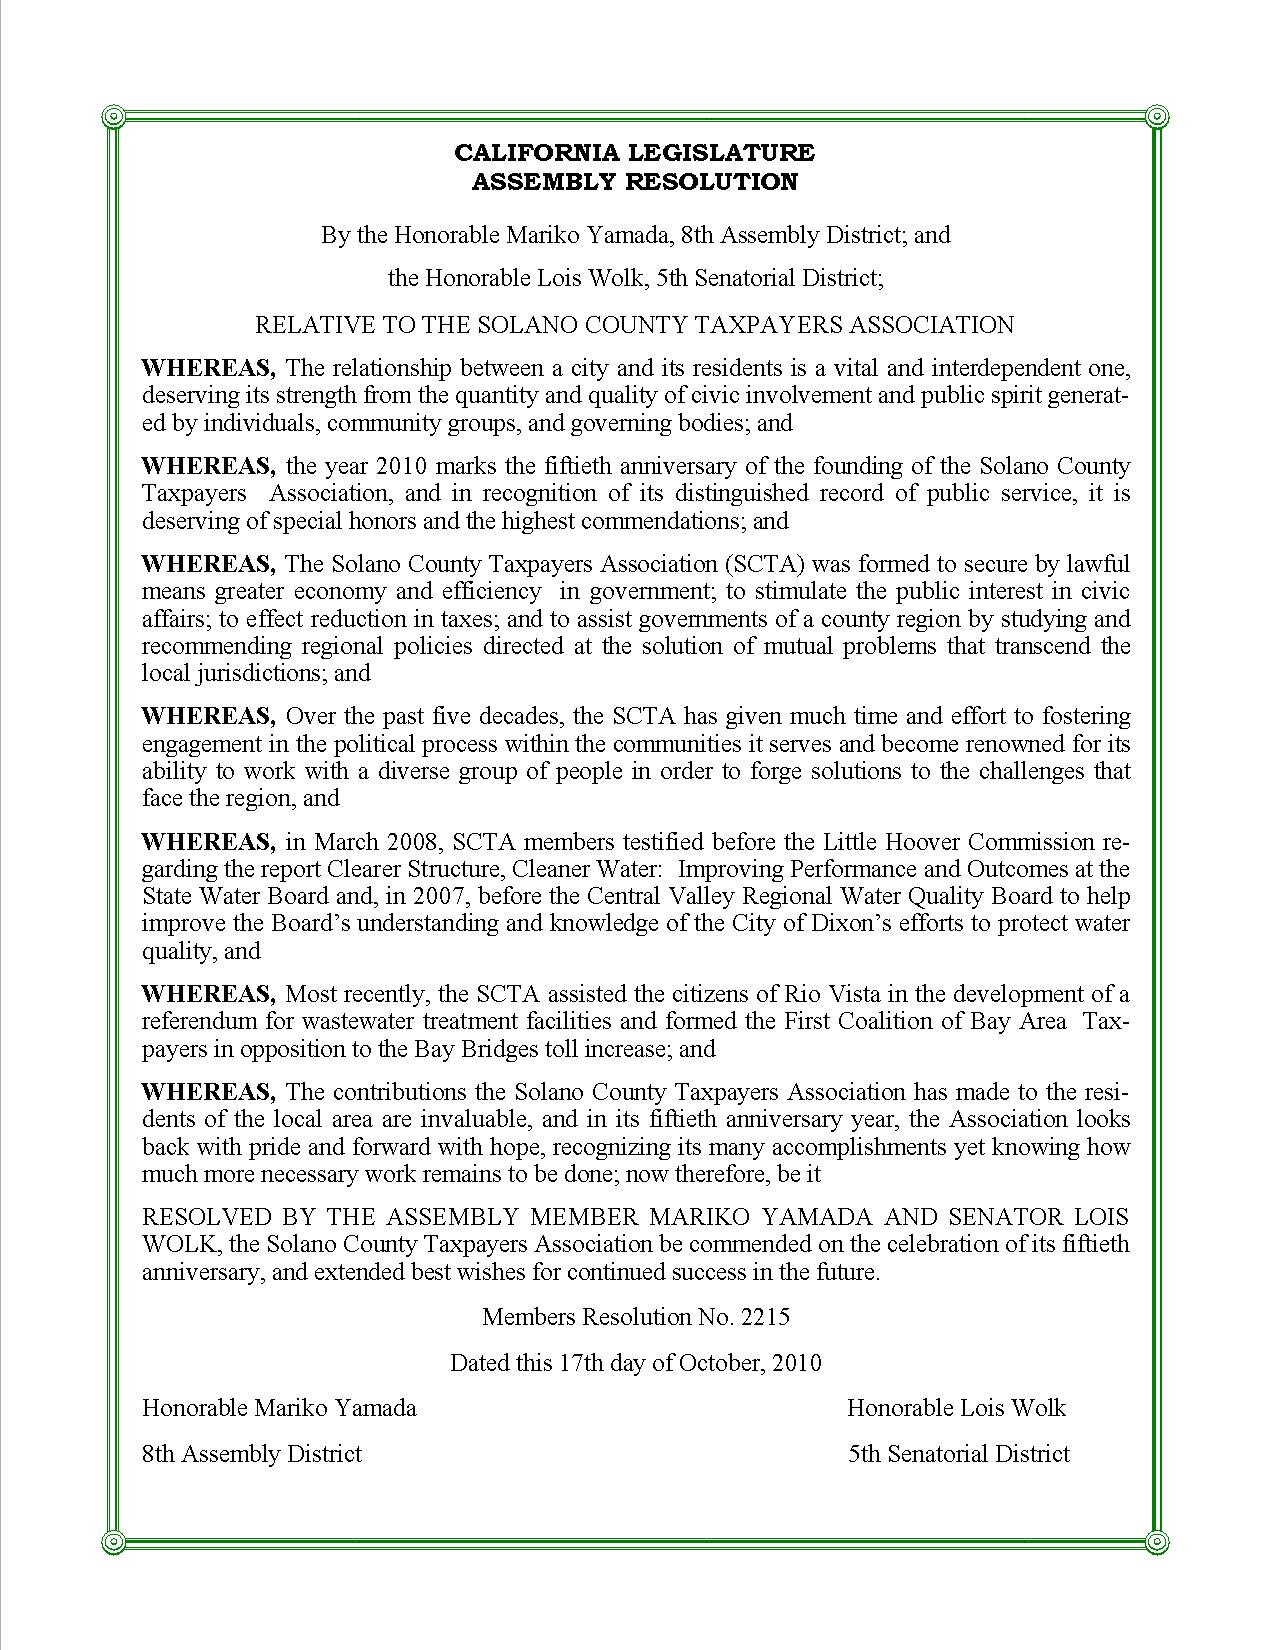 Text of the Resolution